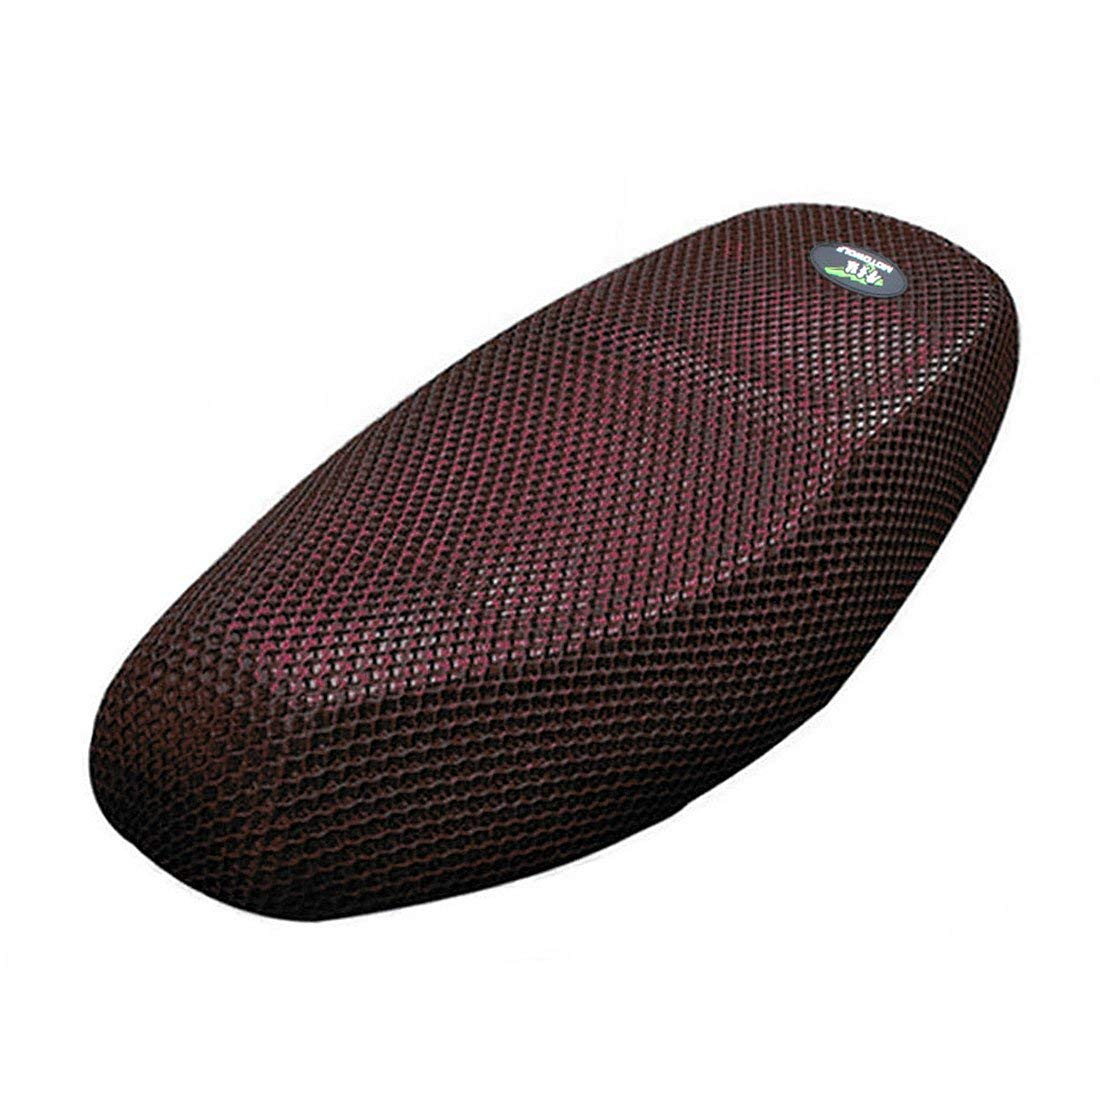 Uxcell M Heat Resistant Breathable Seat Saddle 3D Mesh Cover Black Red Fit for Motorcycle(China)